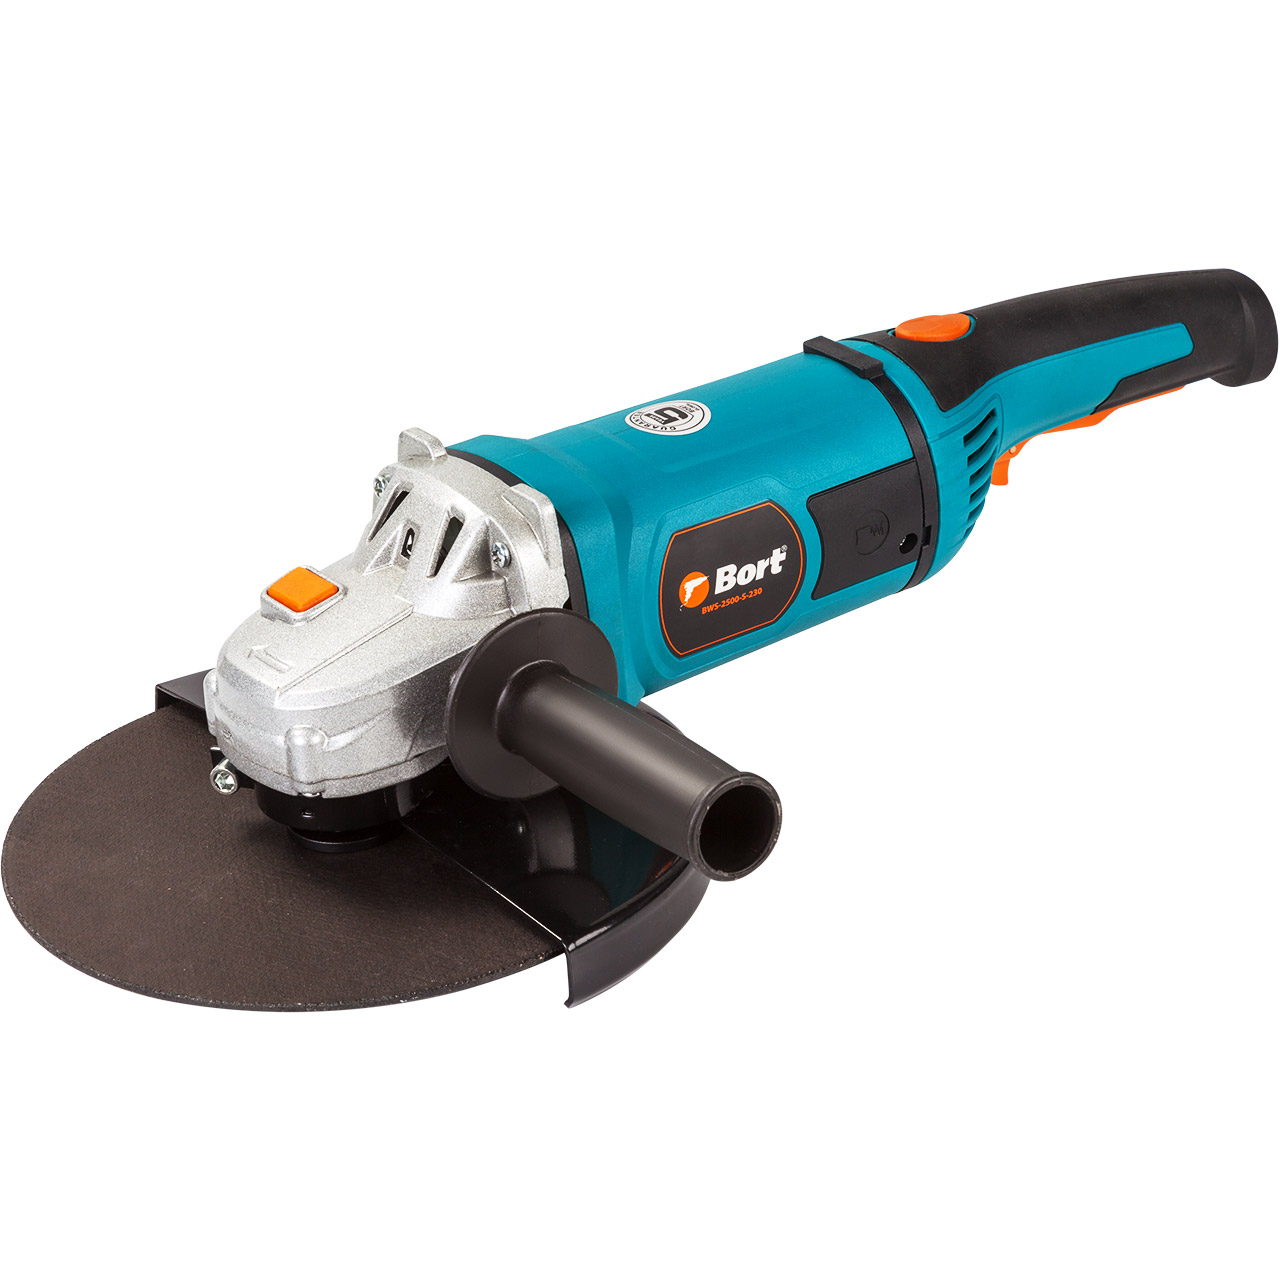 BORT Angle Grinder bulgarian USHM Grinding machine Electric grinder Angle Grinder grinding Power or cutting metal portable Woods Steel Power Tool Warranty BWS-2500-S-230 angle grinder energomash ushm 90112